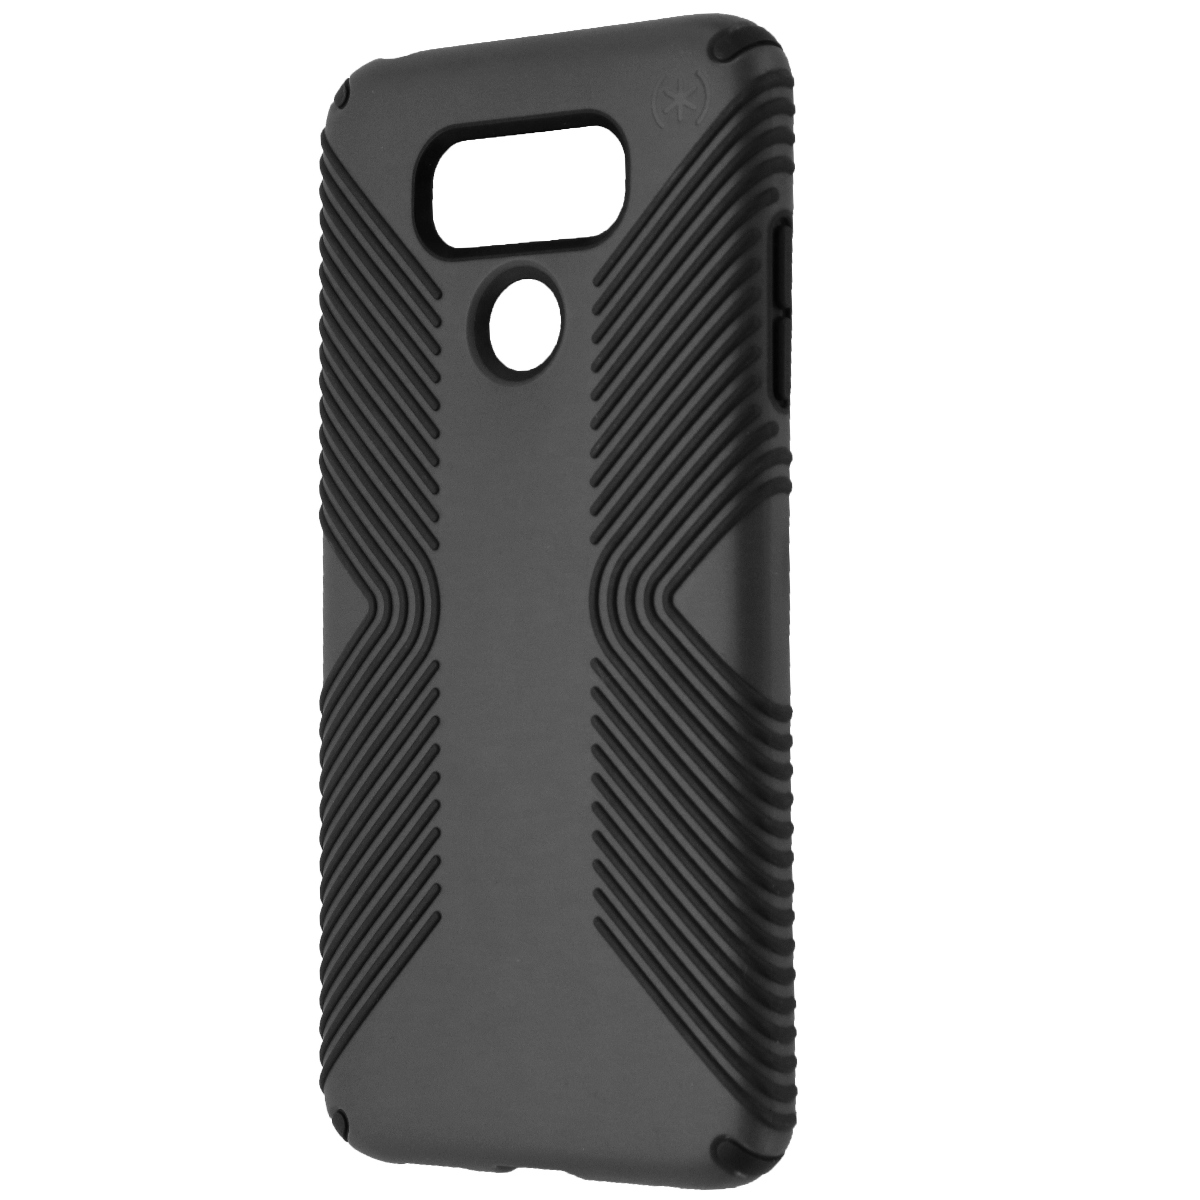 Speck Products Presidio Grip Cell Phone Case LG G6 - Graphite Gray/Charcoal Gray